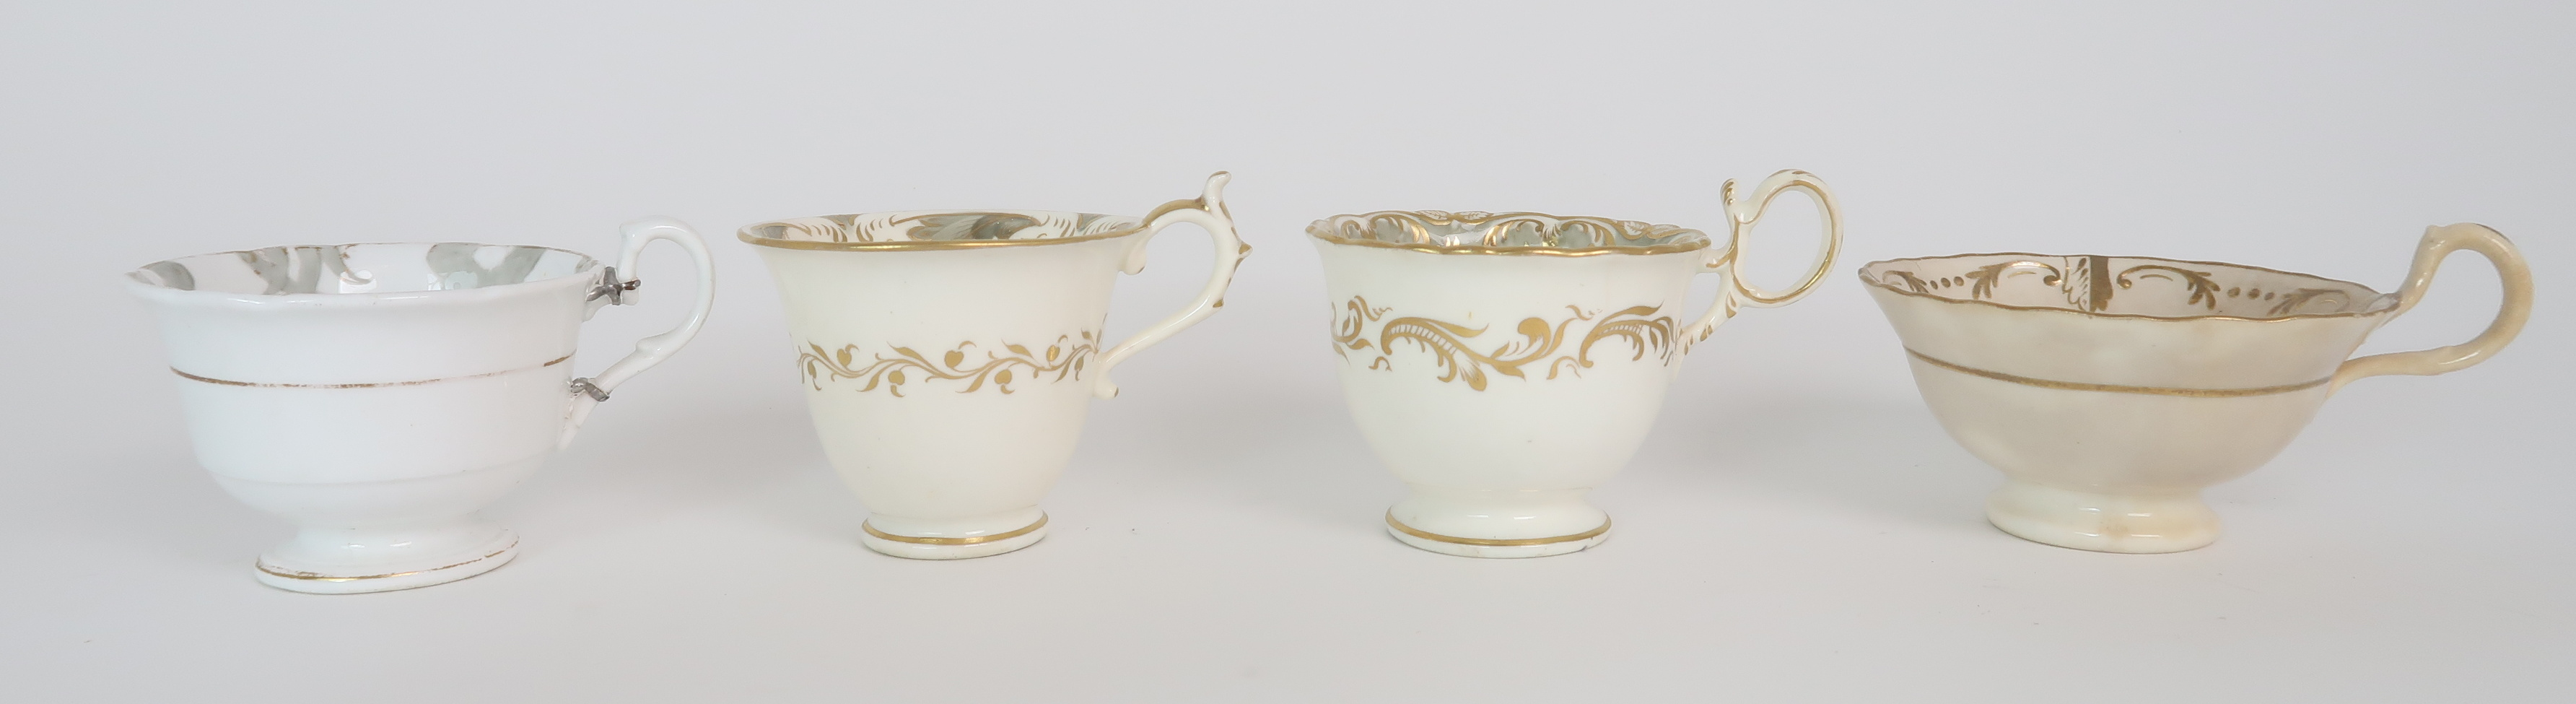 A COLLECTION OF 19TH CENTURY ENGLISH TEA AND COFFEE WARES the white ground with either grey and gilt - Image 19 of 22